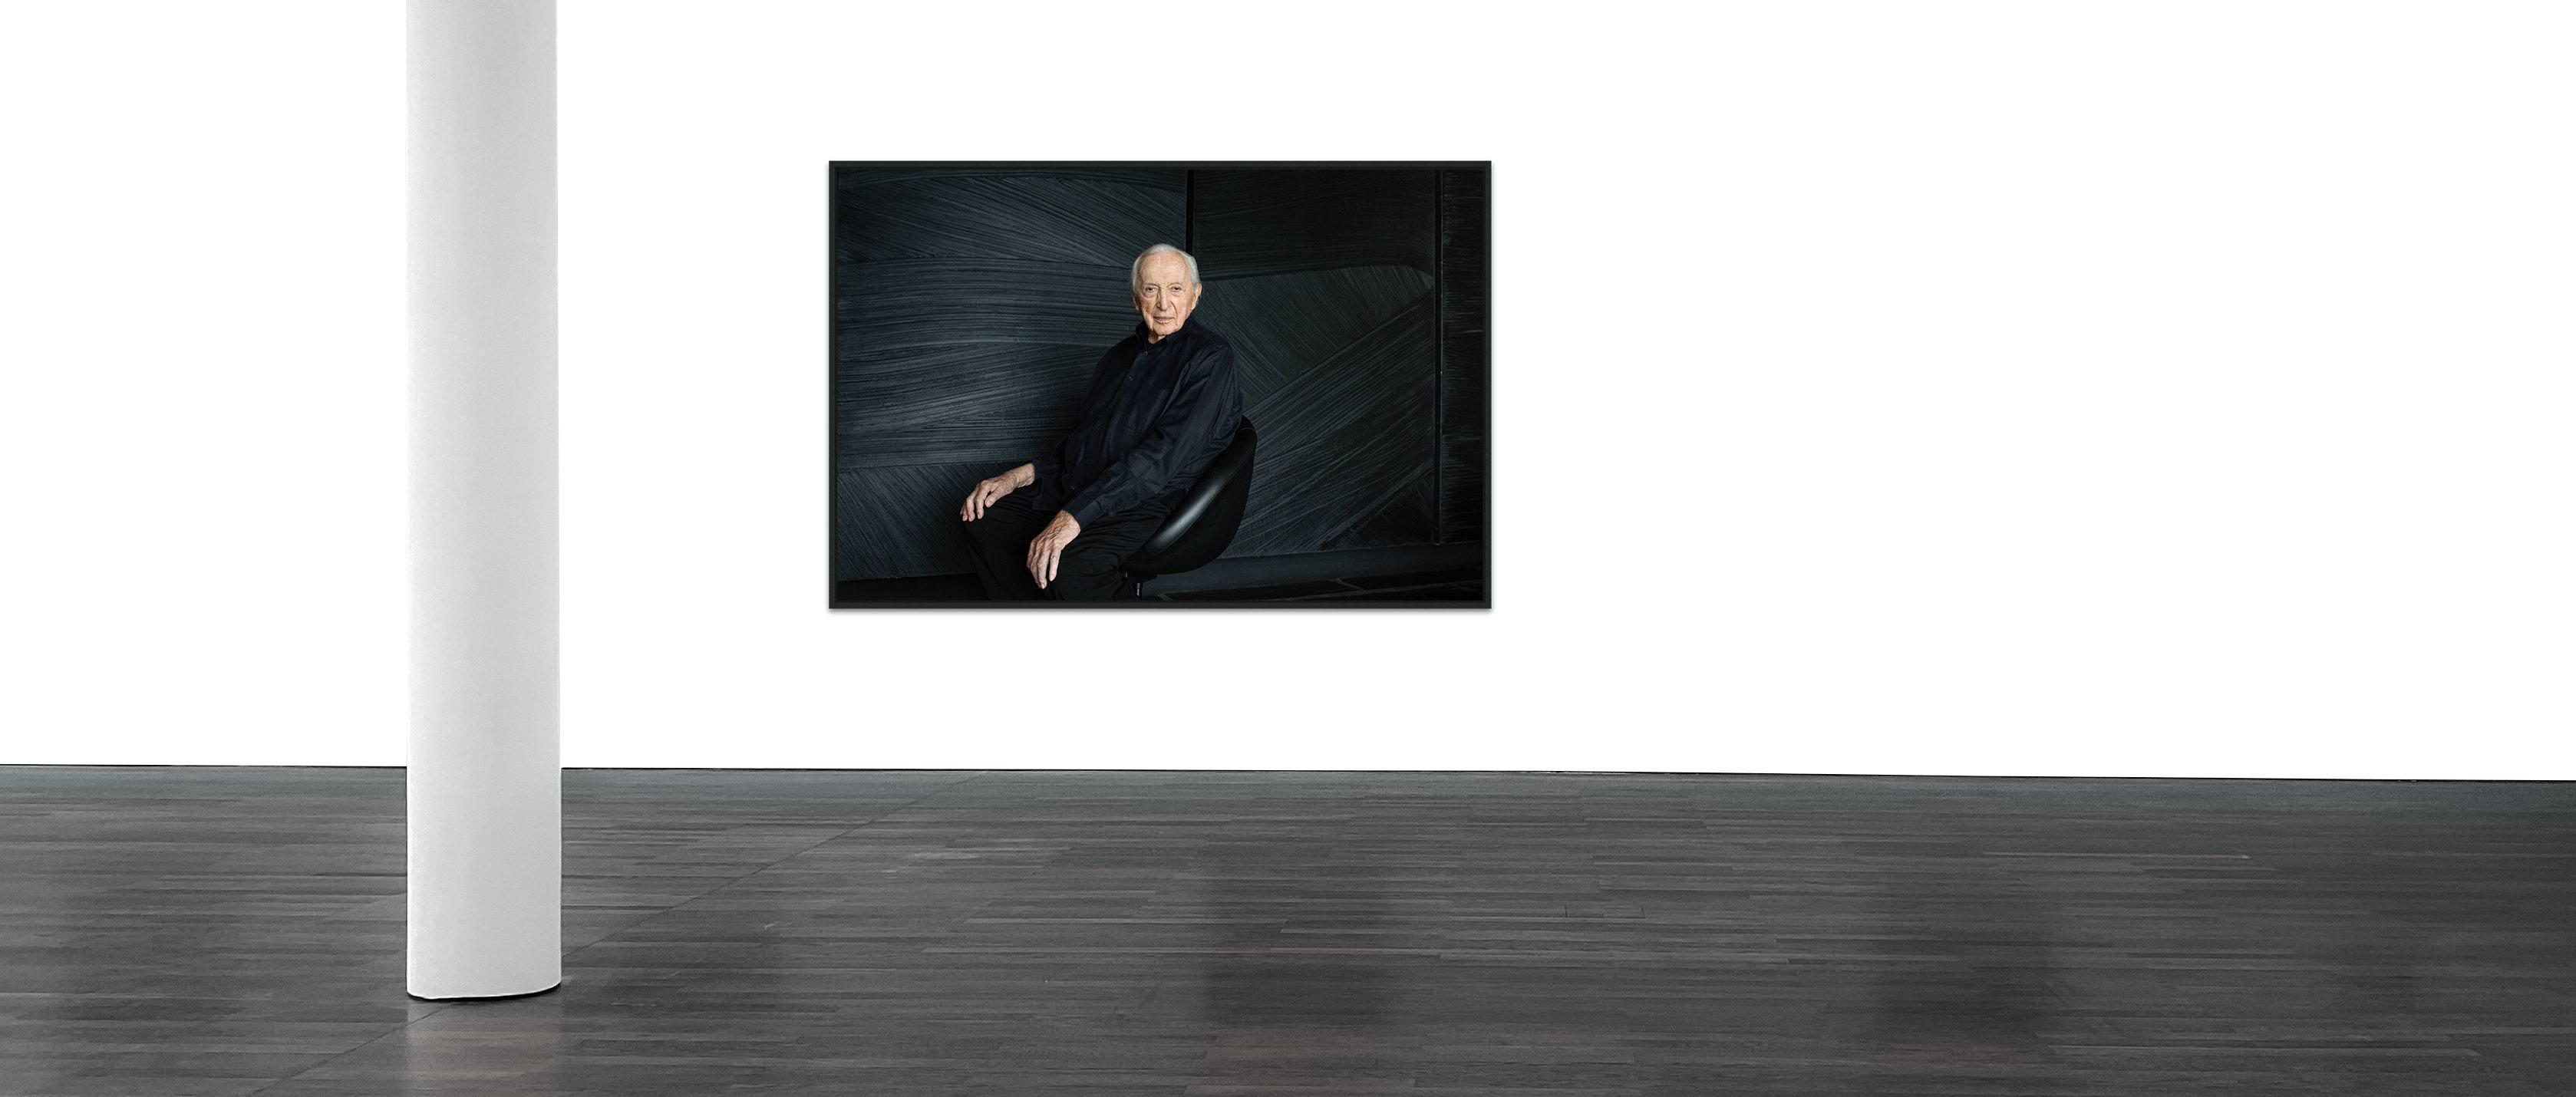 Soulages museum frieder burda